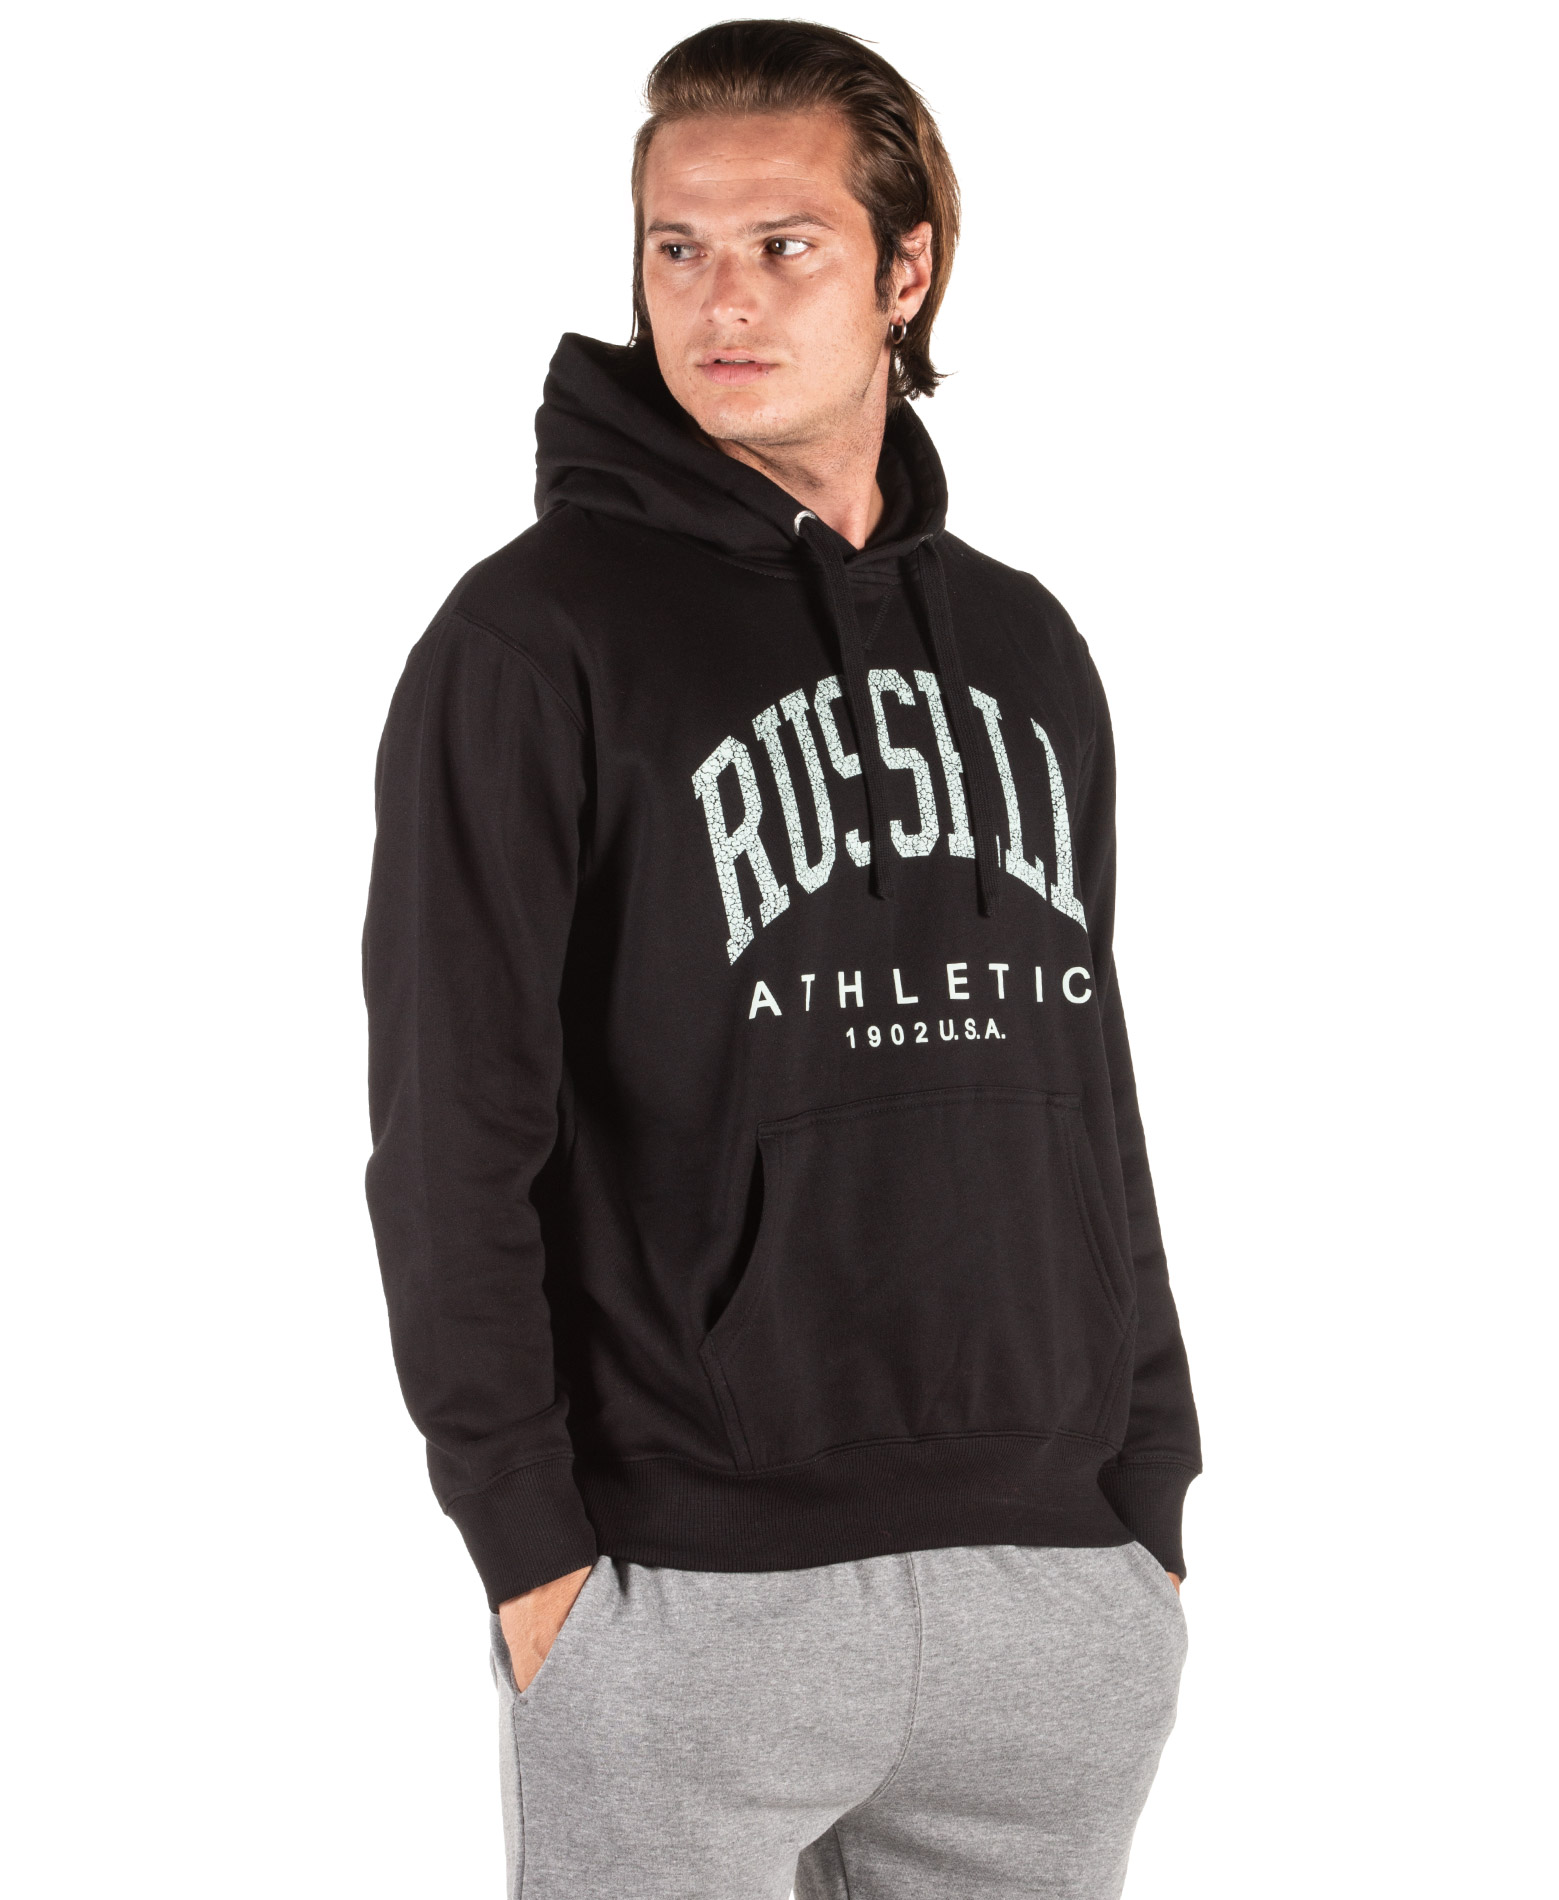 Russell Athletic A9-014-2-099 Μαύρο